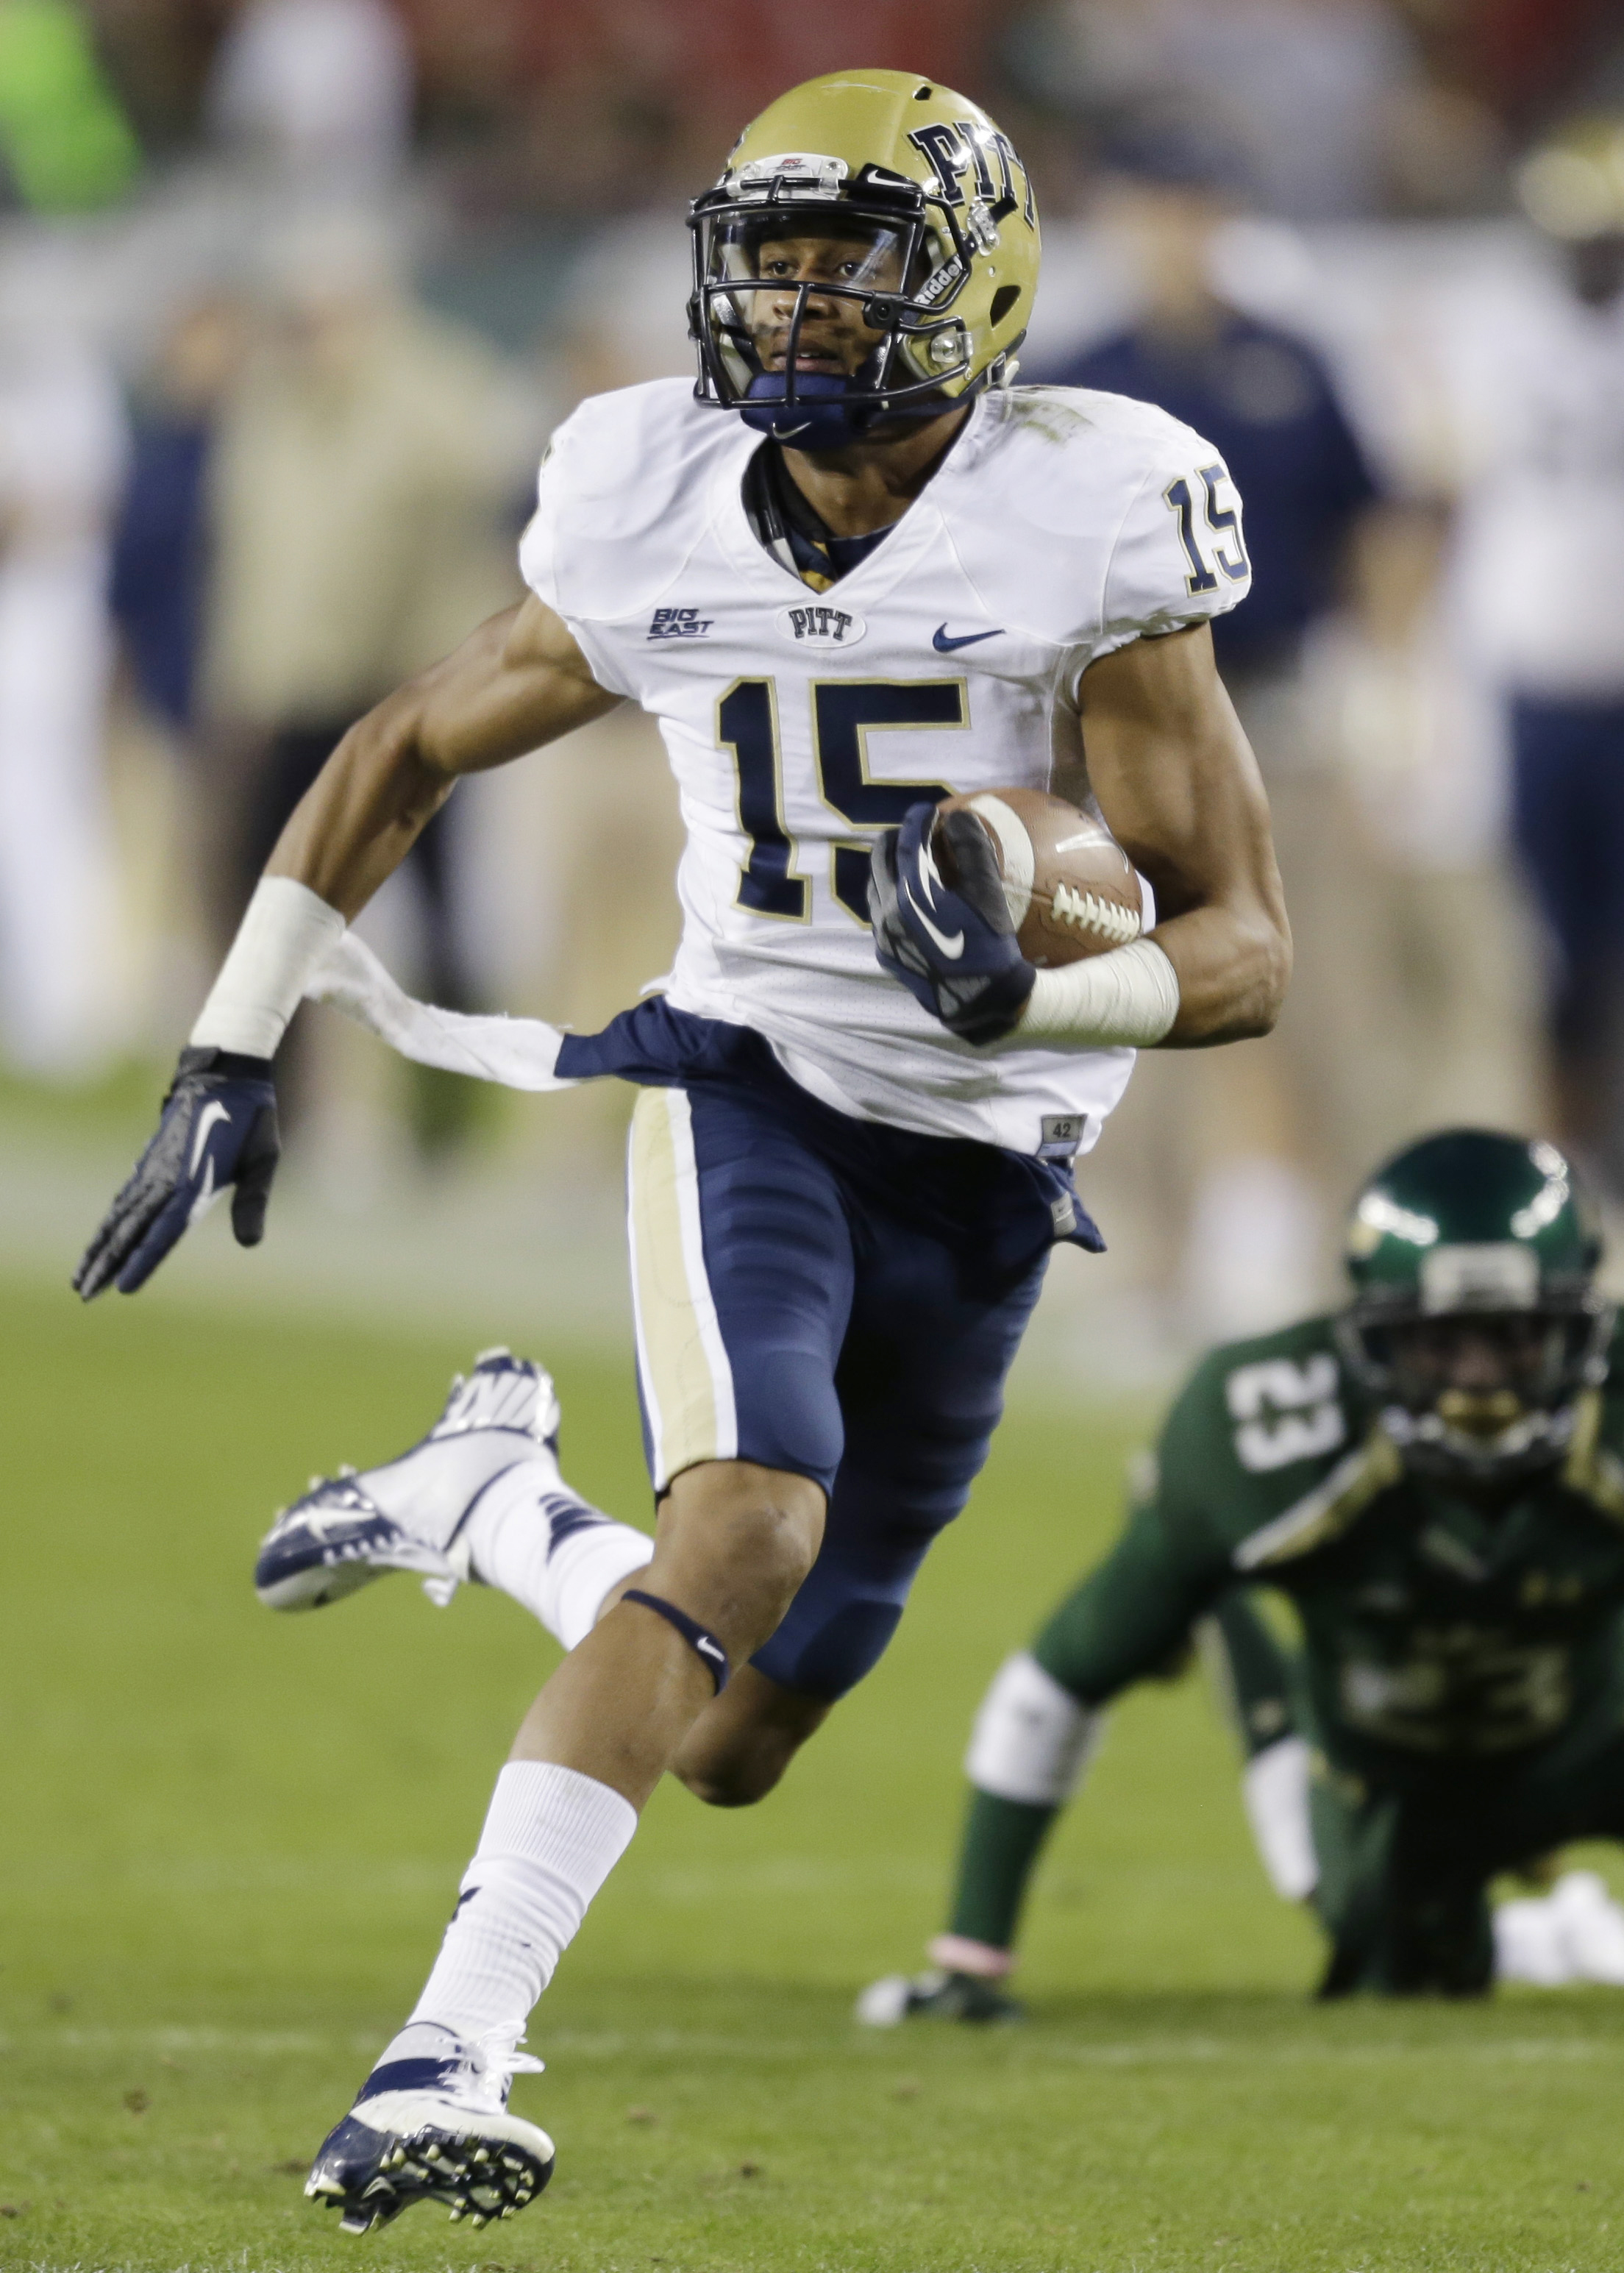 The 6-foot-2 1/2, 189-pound Street runs a 4.55-second 40-yard dash. He caught 73 passes in 2012, but might not do as well in 2013 with a redshirt freshman (Chad Voytik) likely taking over at quarterback. (AP Photo/Chris O'Meara)